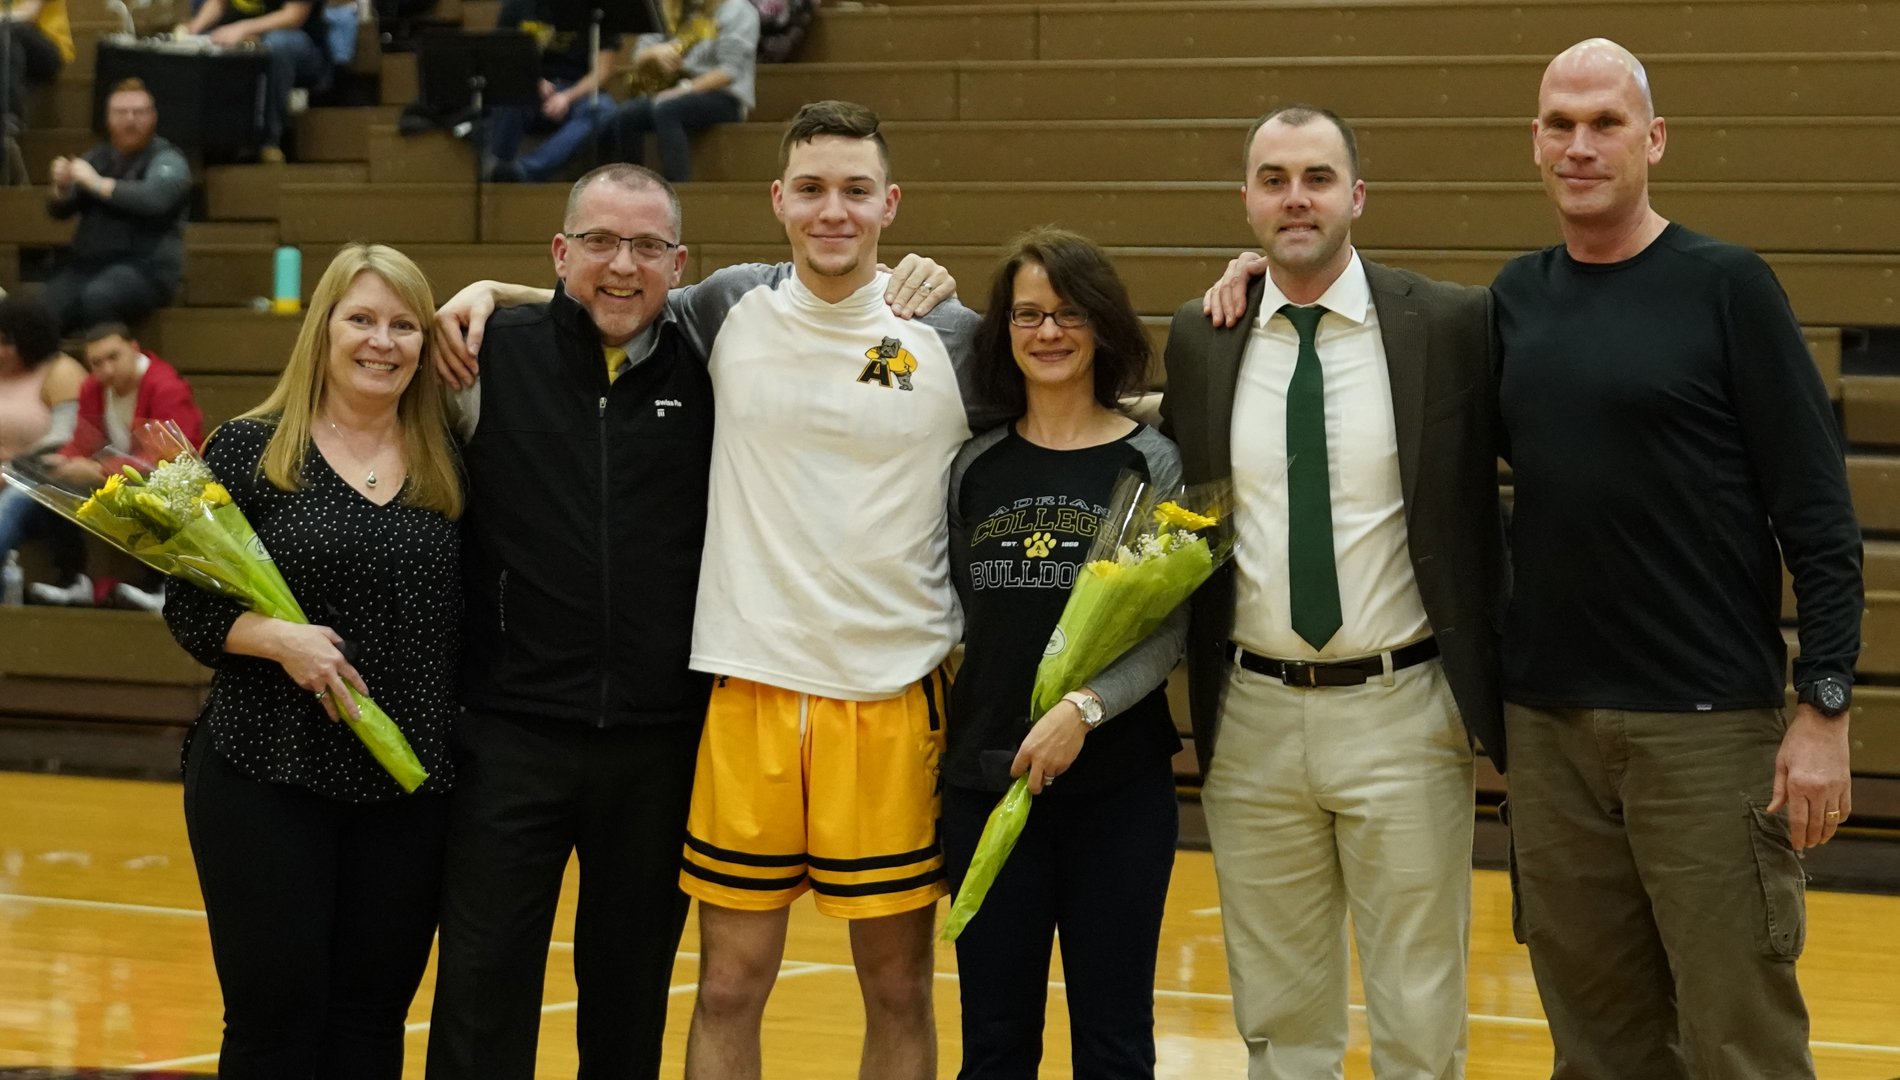 Senior Andrew Landini was recognized prior to Saturday's win over Kalamazoo. Landini started the game and finished with two points in his final game as a Bulldog (Photo by Mike Dickie).